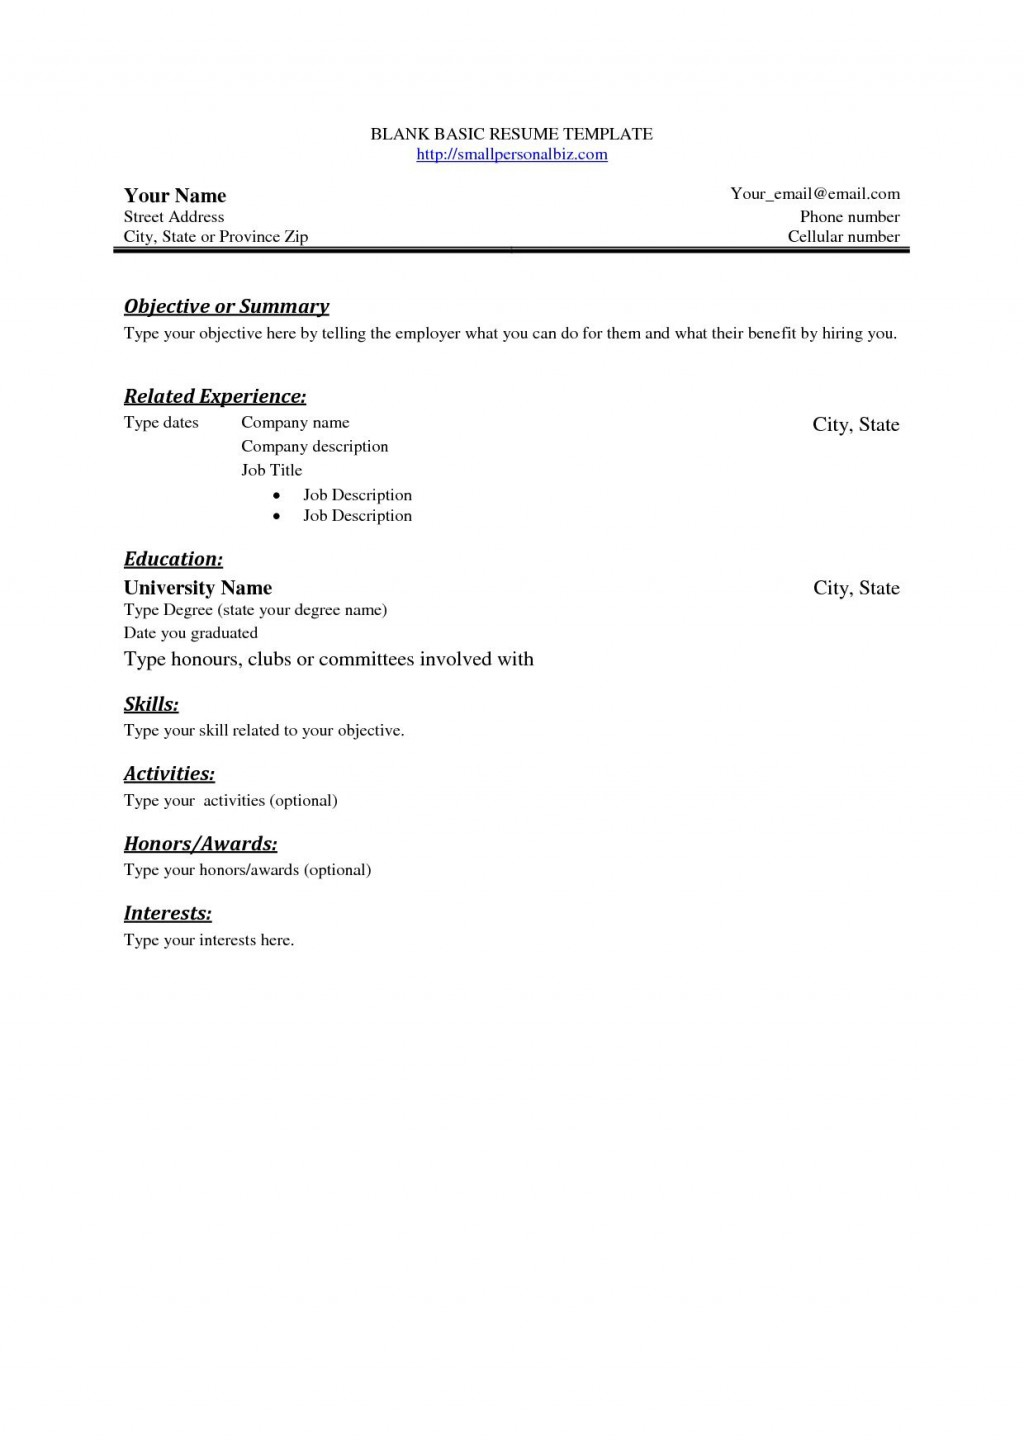 003 Frightening Basic Resume Template Free Highest Quality  Easy Download Word Australia DocLarge